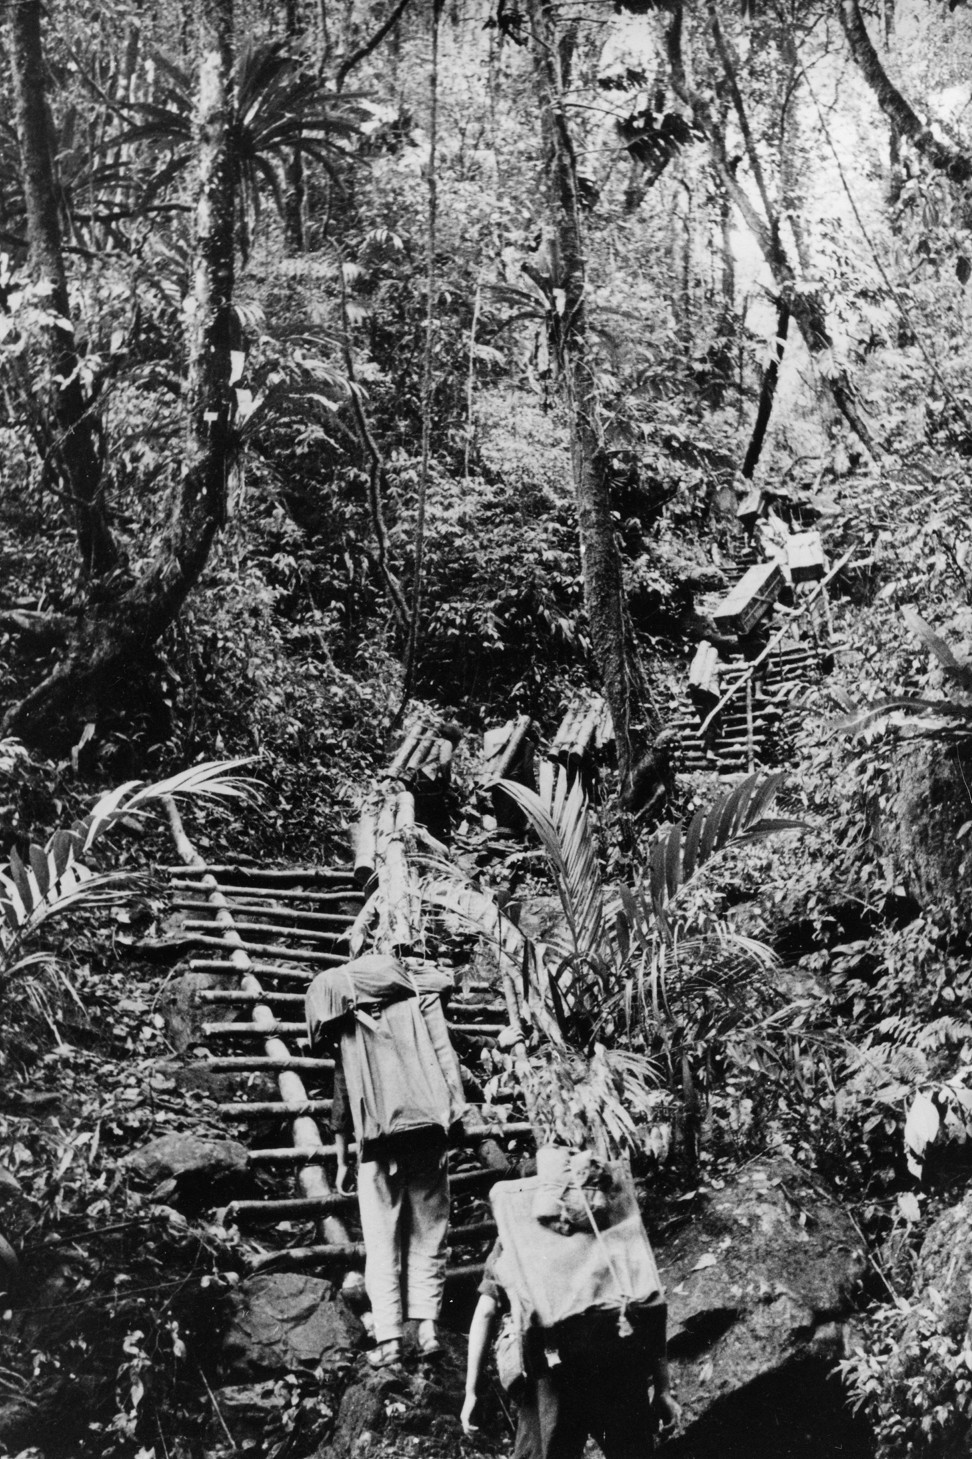 War supplies carried through jungle routes from North Vietnam and Cambodia to the southern Ho Chi Minh trail during the Vietnam war. Photo: Ullstein Bild via Getty Images